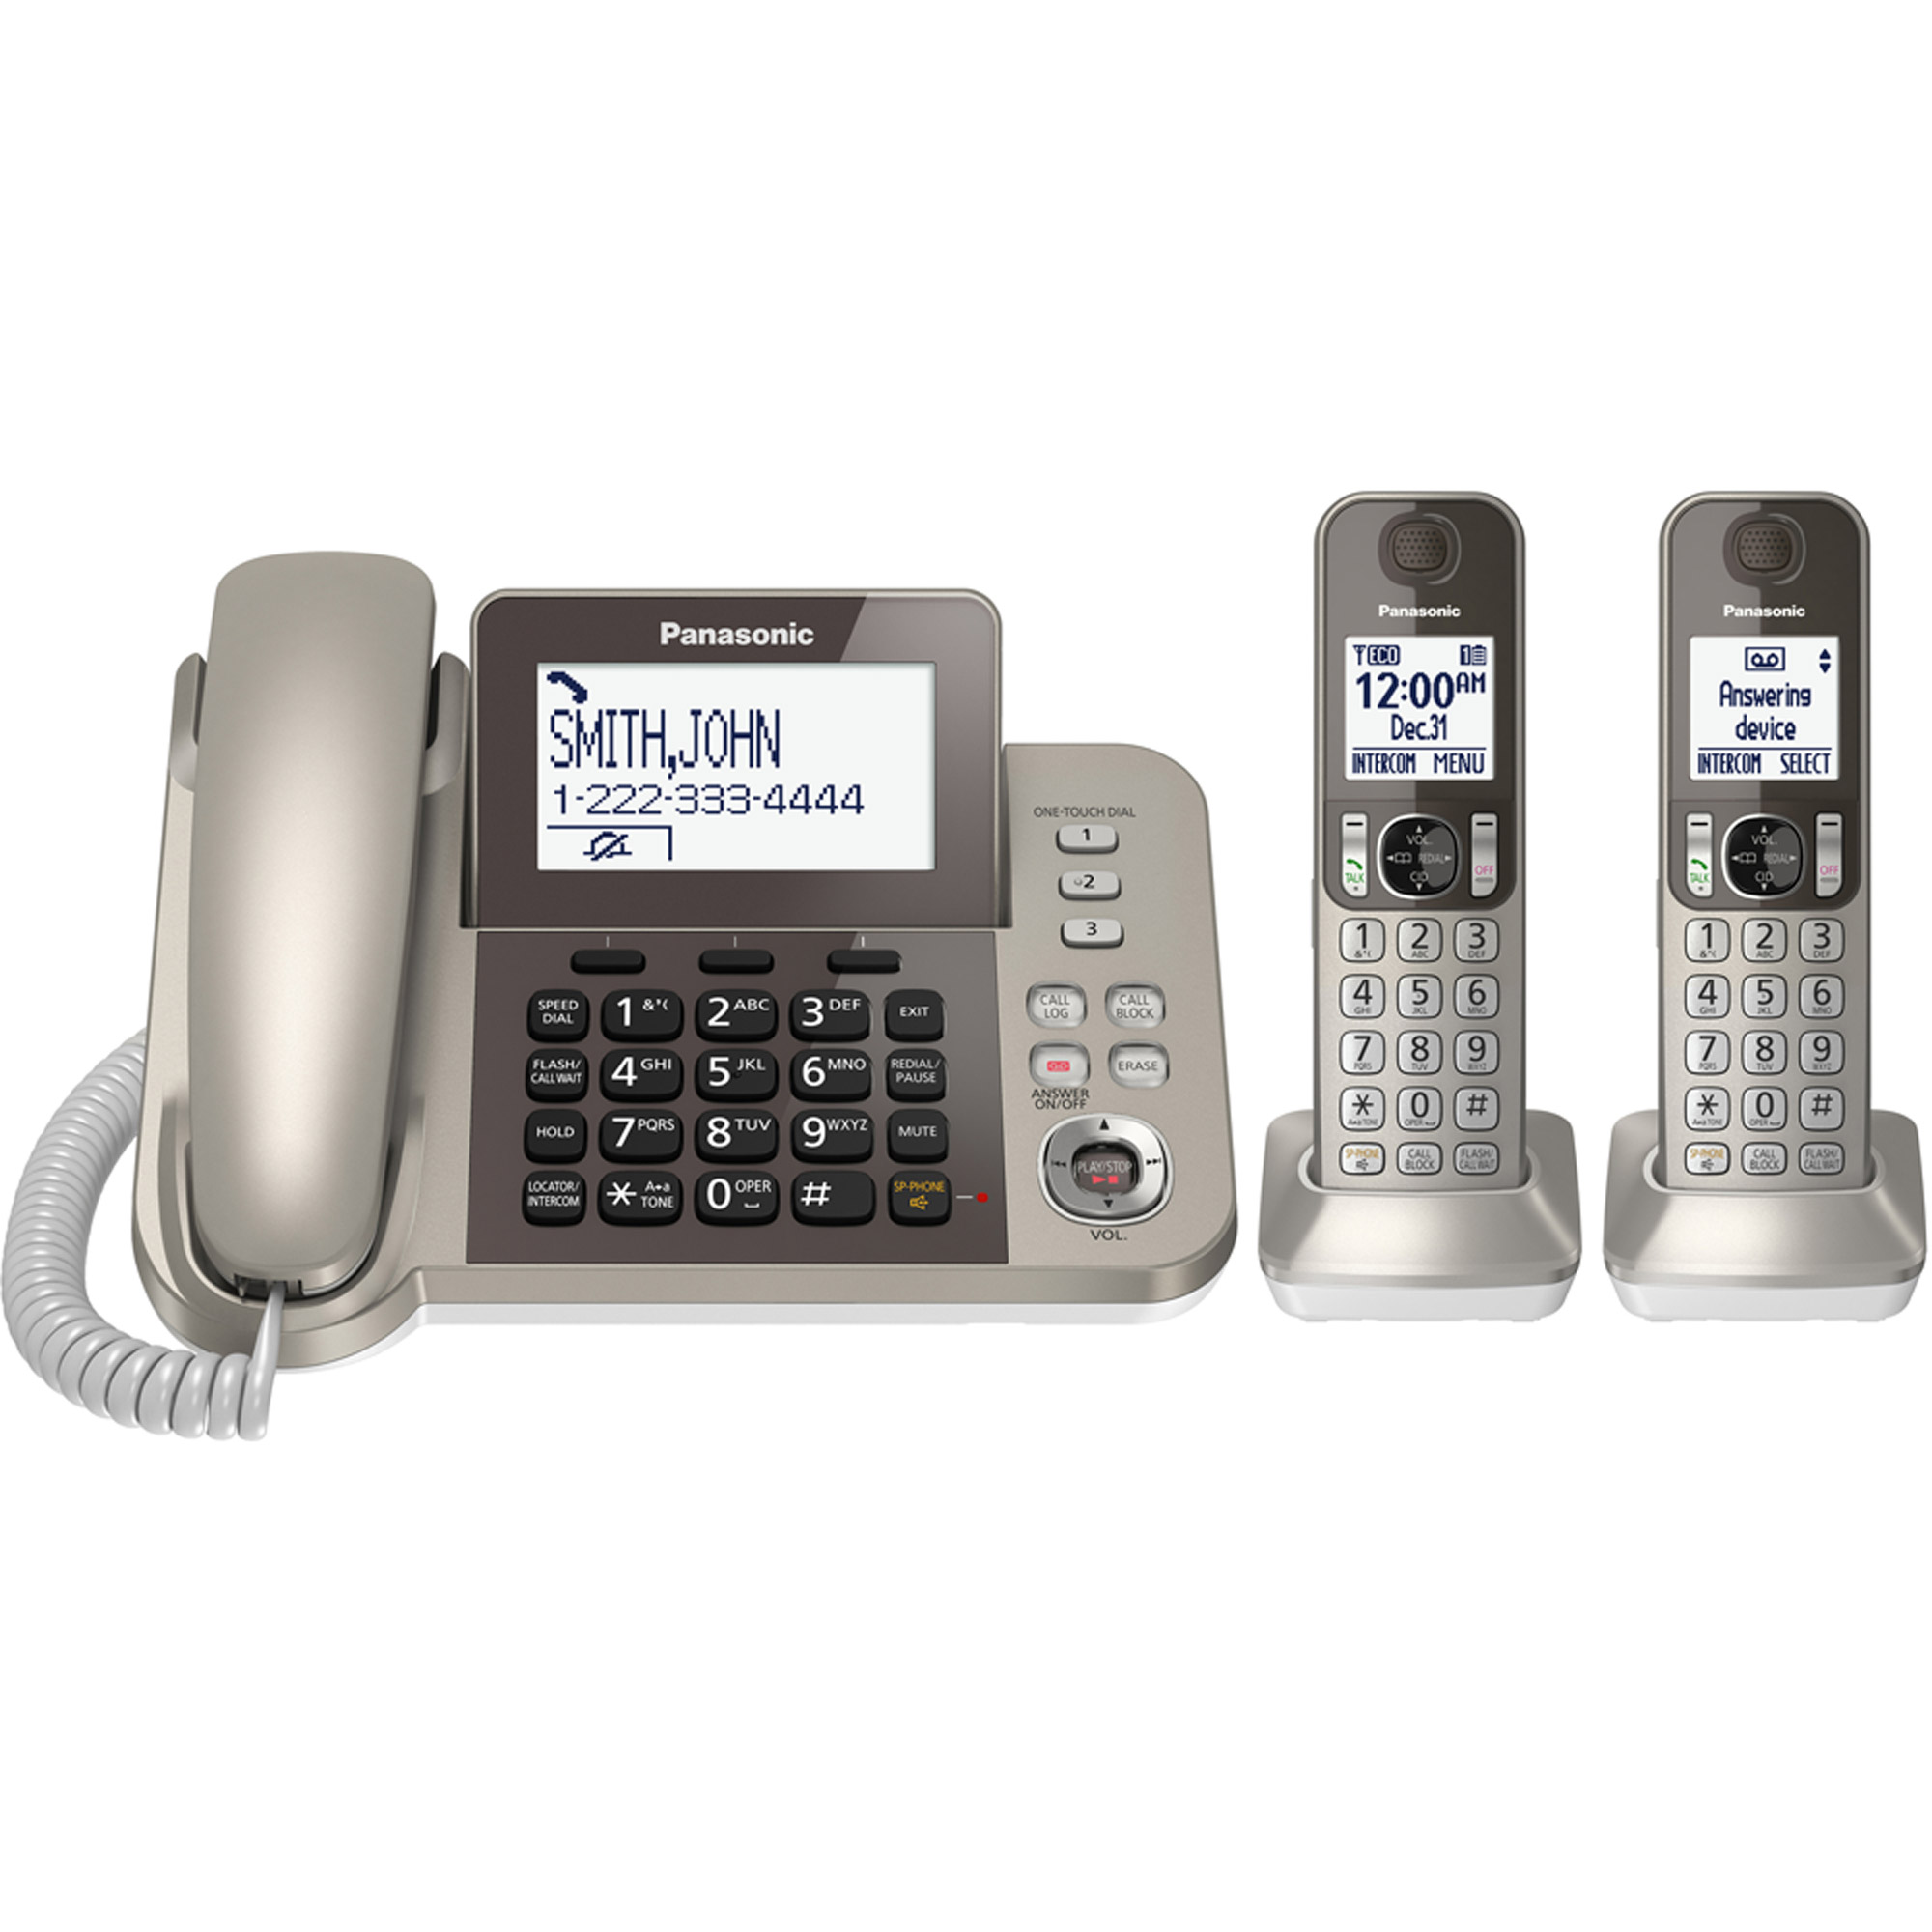 Panasonic Cordless Phone and Answering Machine with 2 Handsets by Panasonic